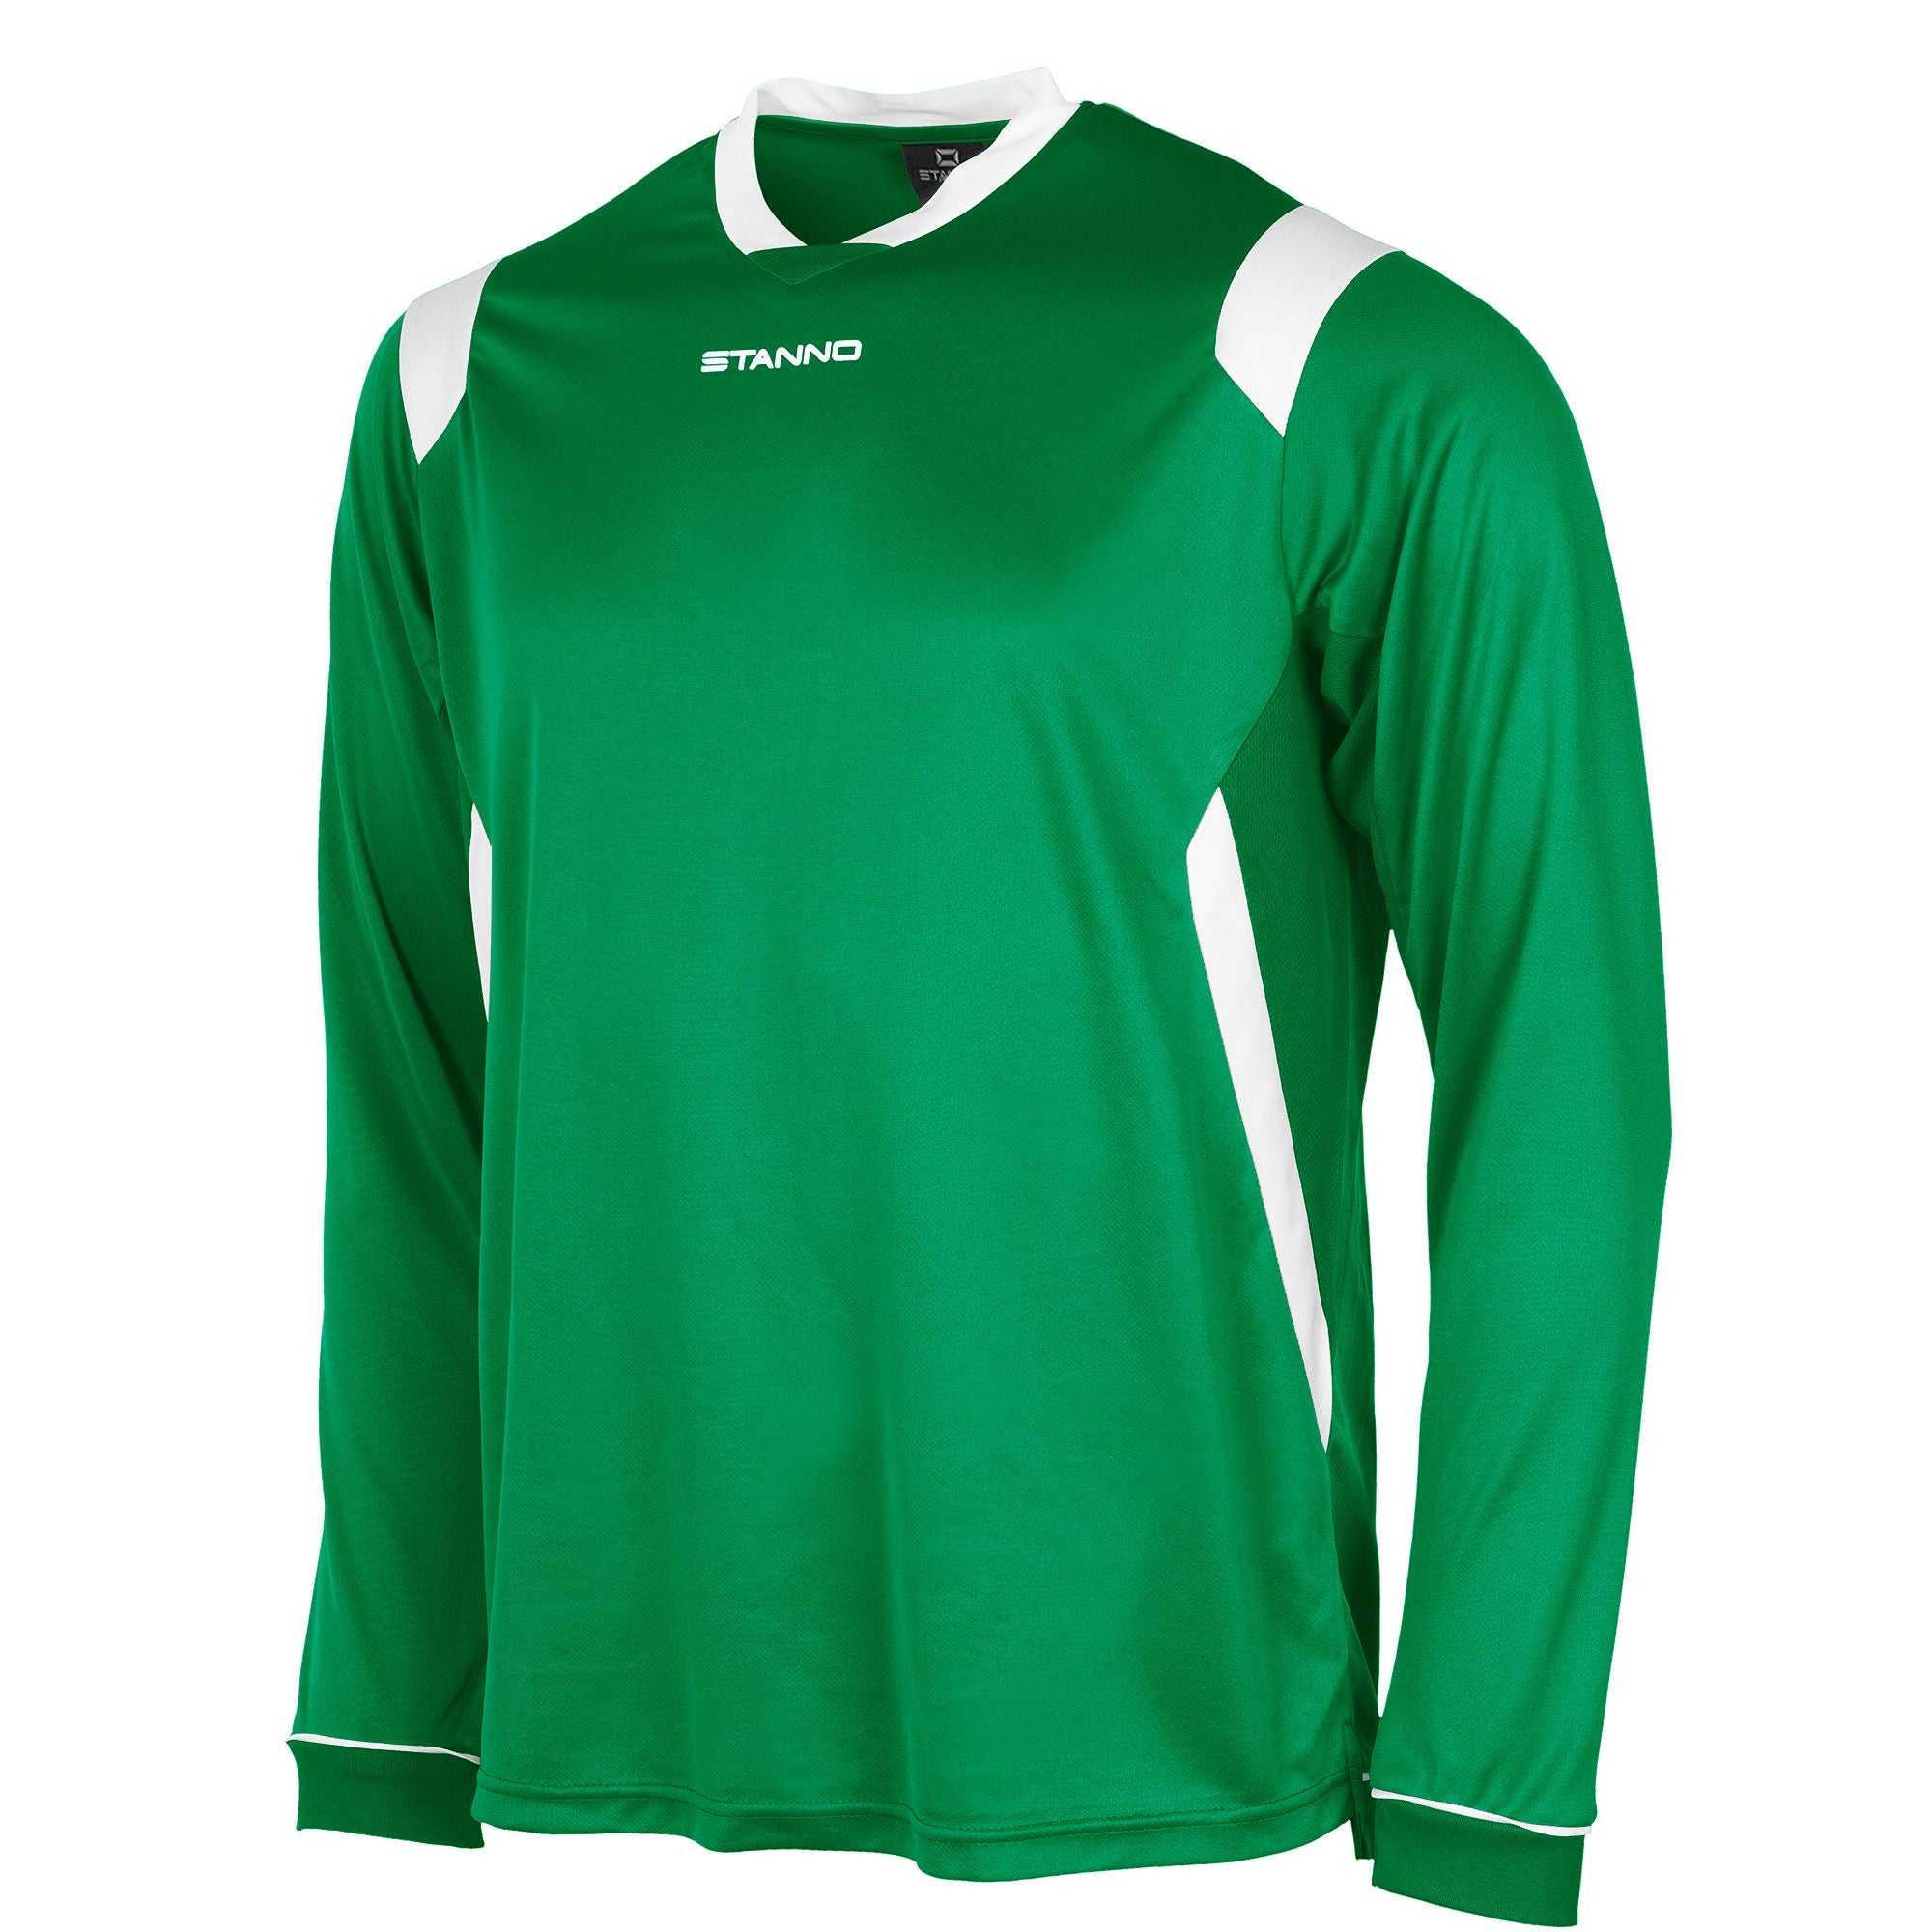 Stanno Arezzo long sleeved shirt in green with white contrast collar, and stripe detail on shoulders and sides.